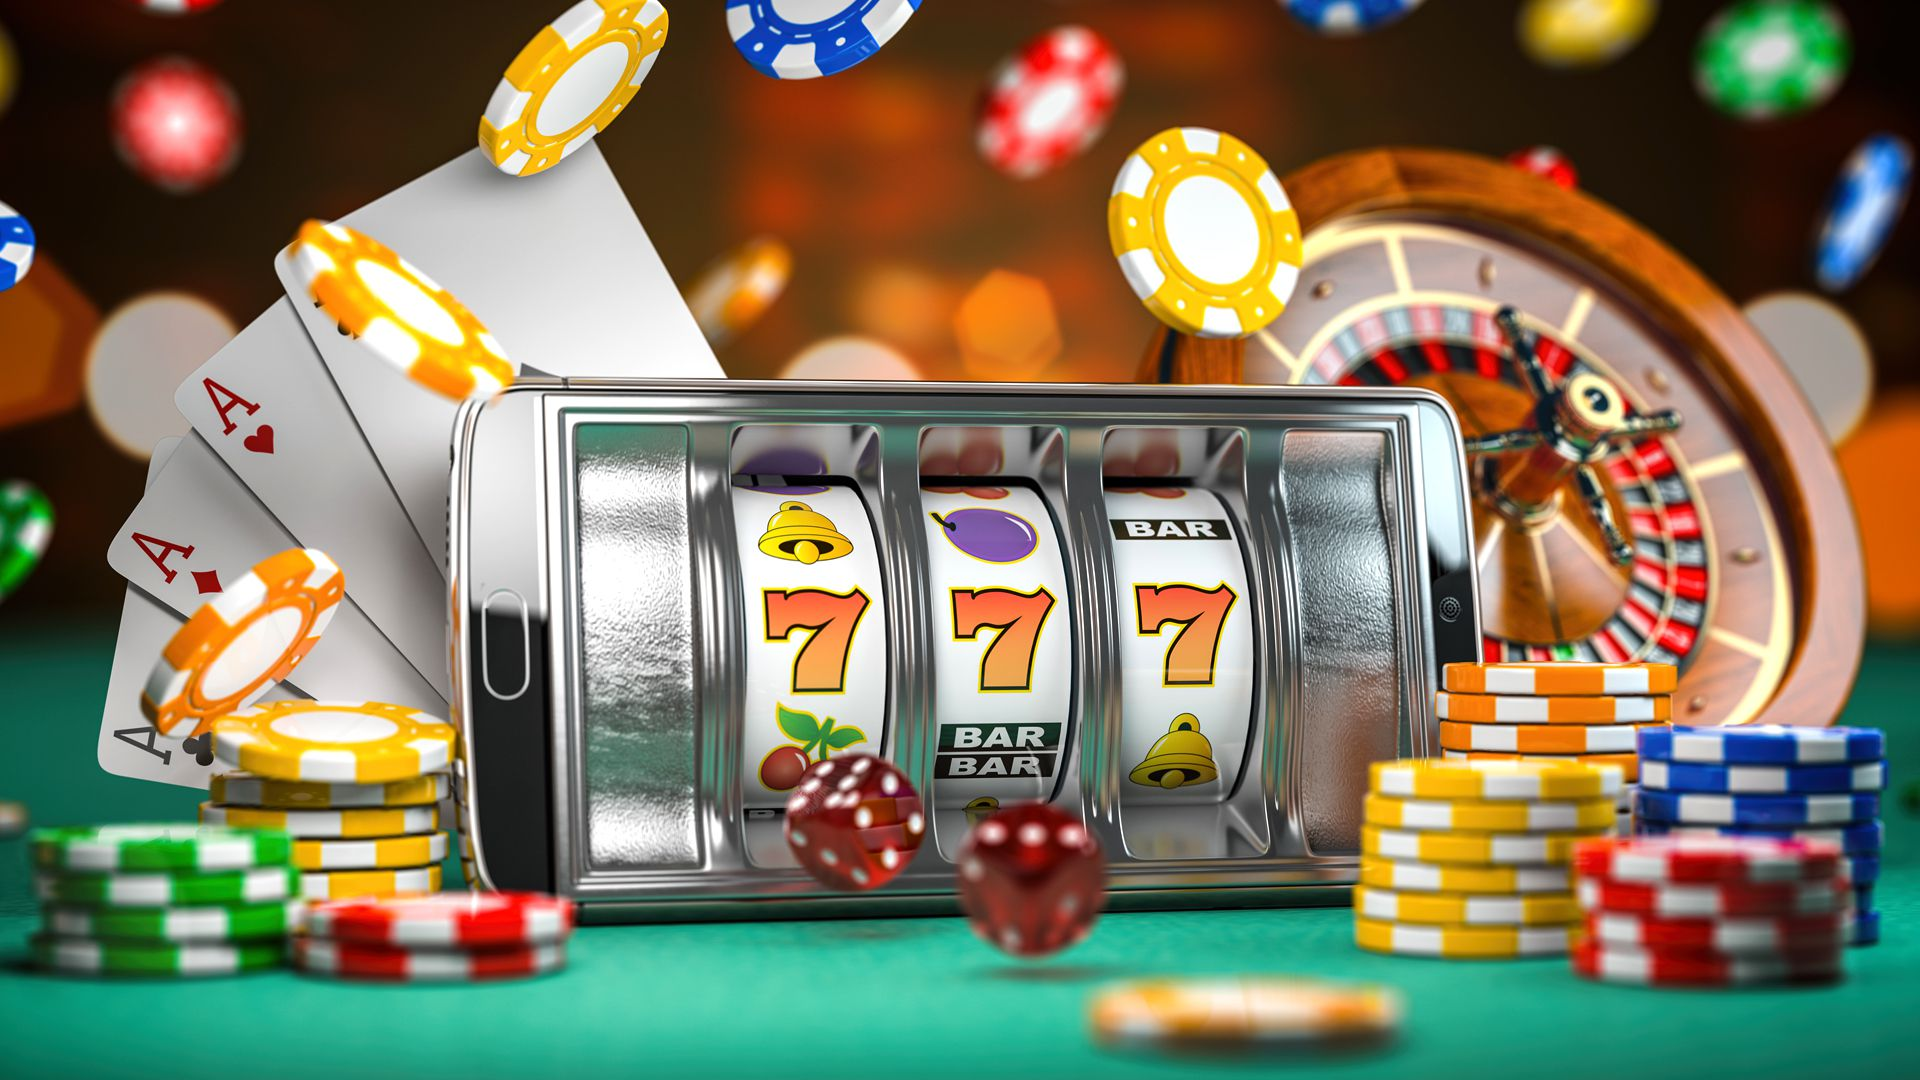 Online casino secrets - find your key to riches